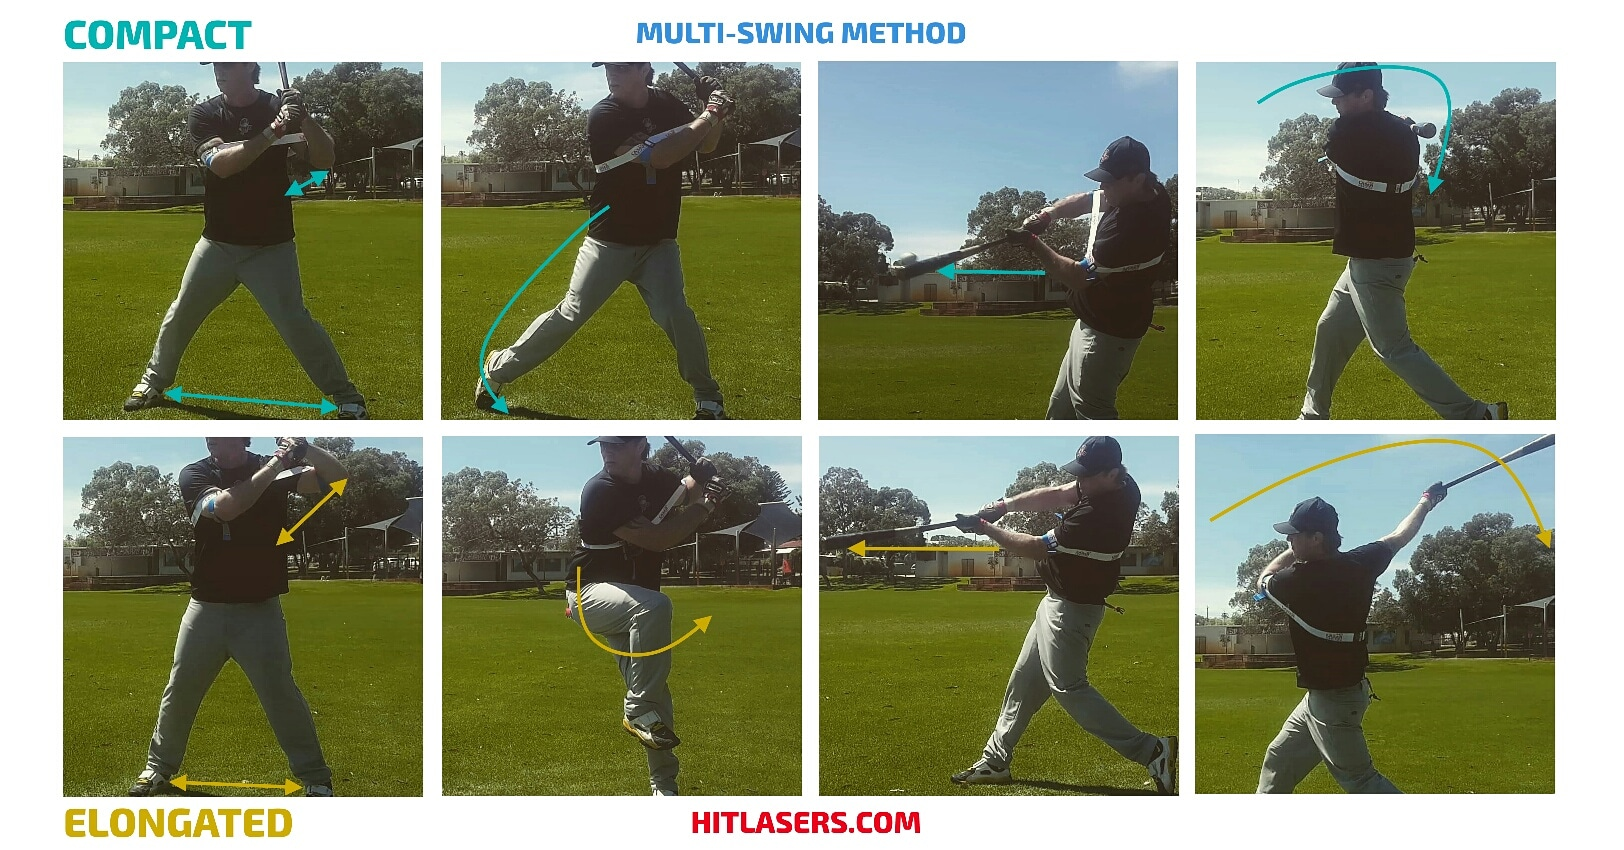 Multi-Swing Method